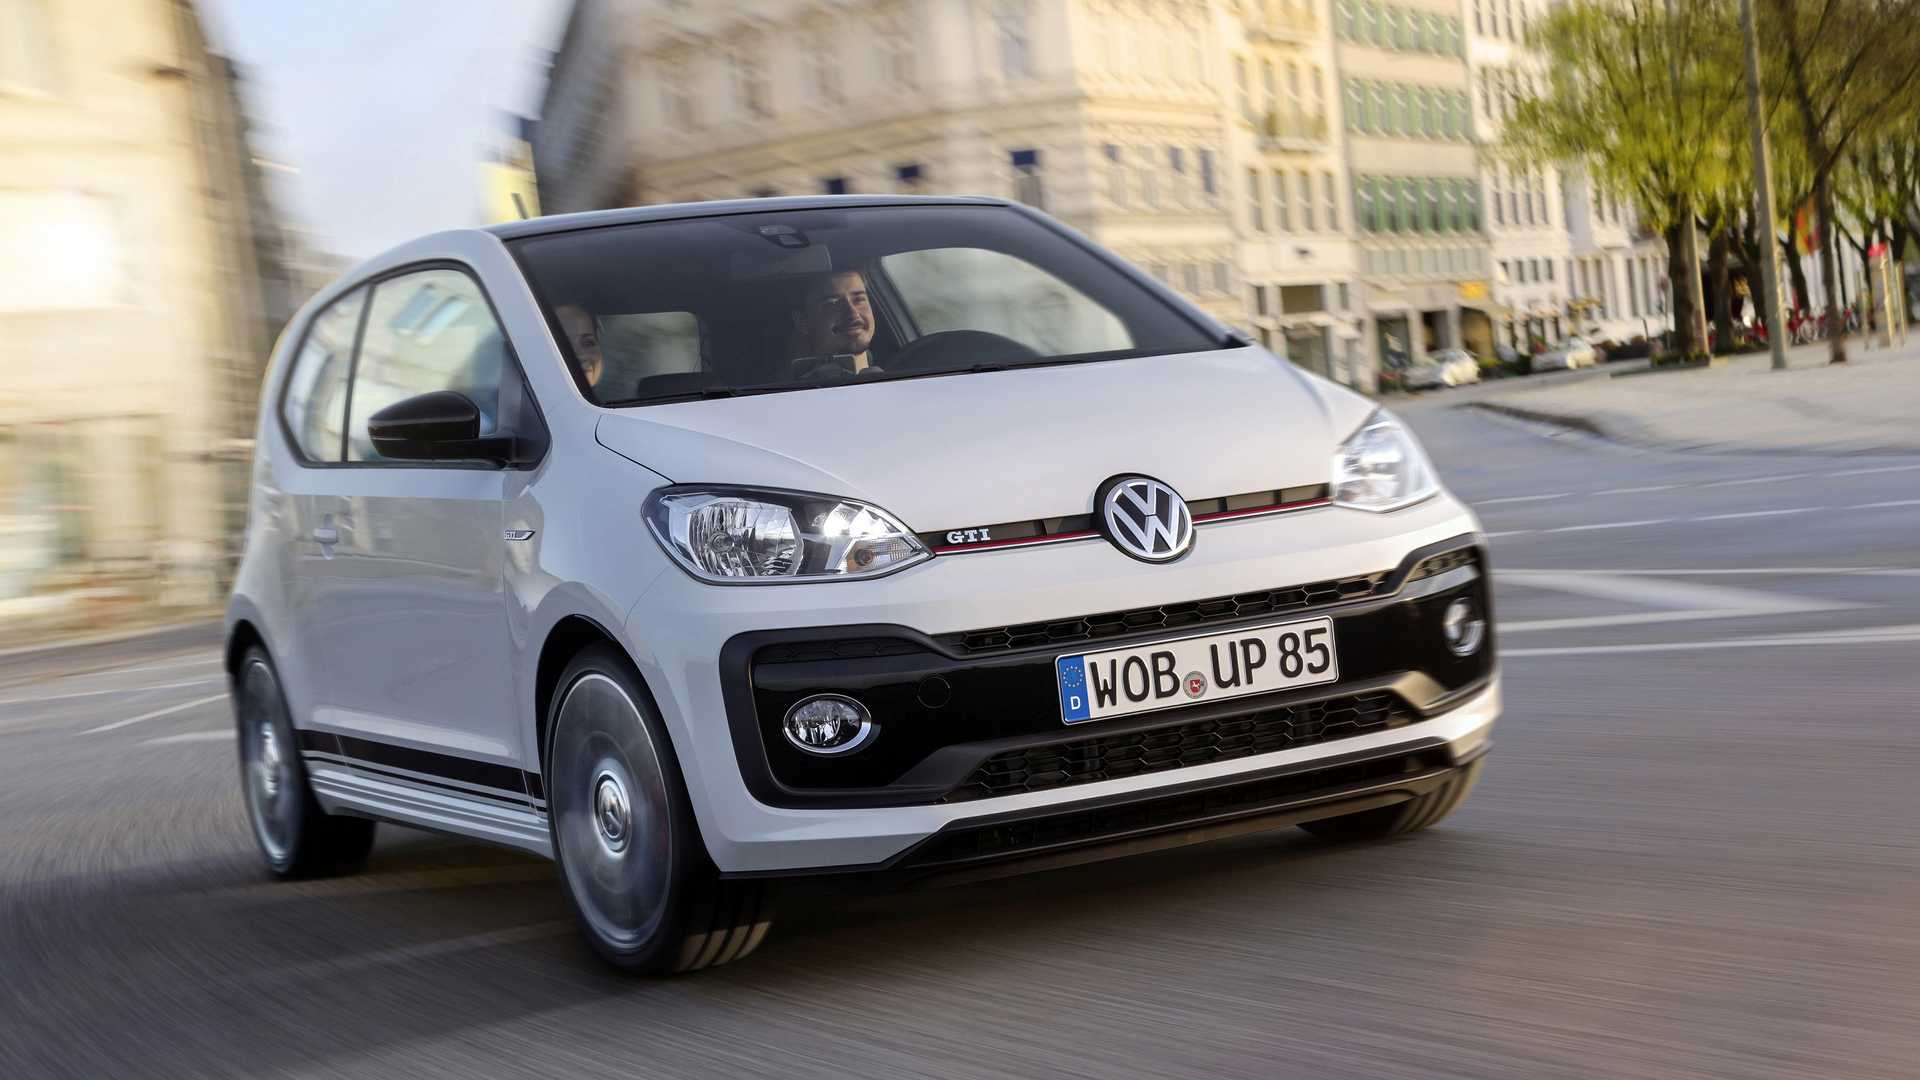 64 The Best Volkswagen Up 2020 Specs And Review